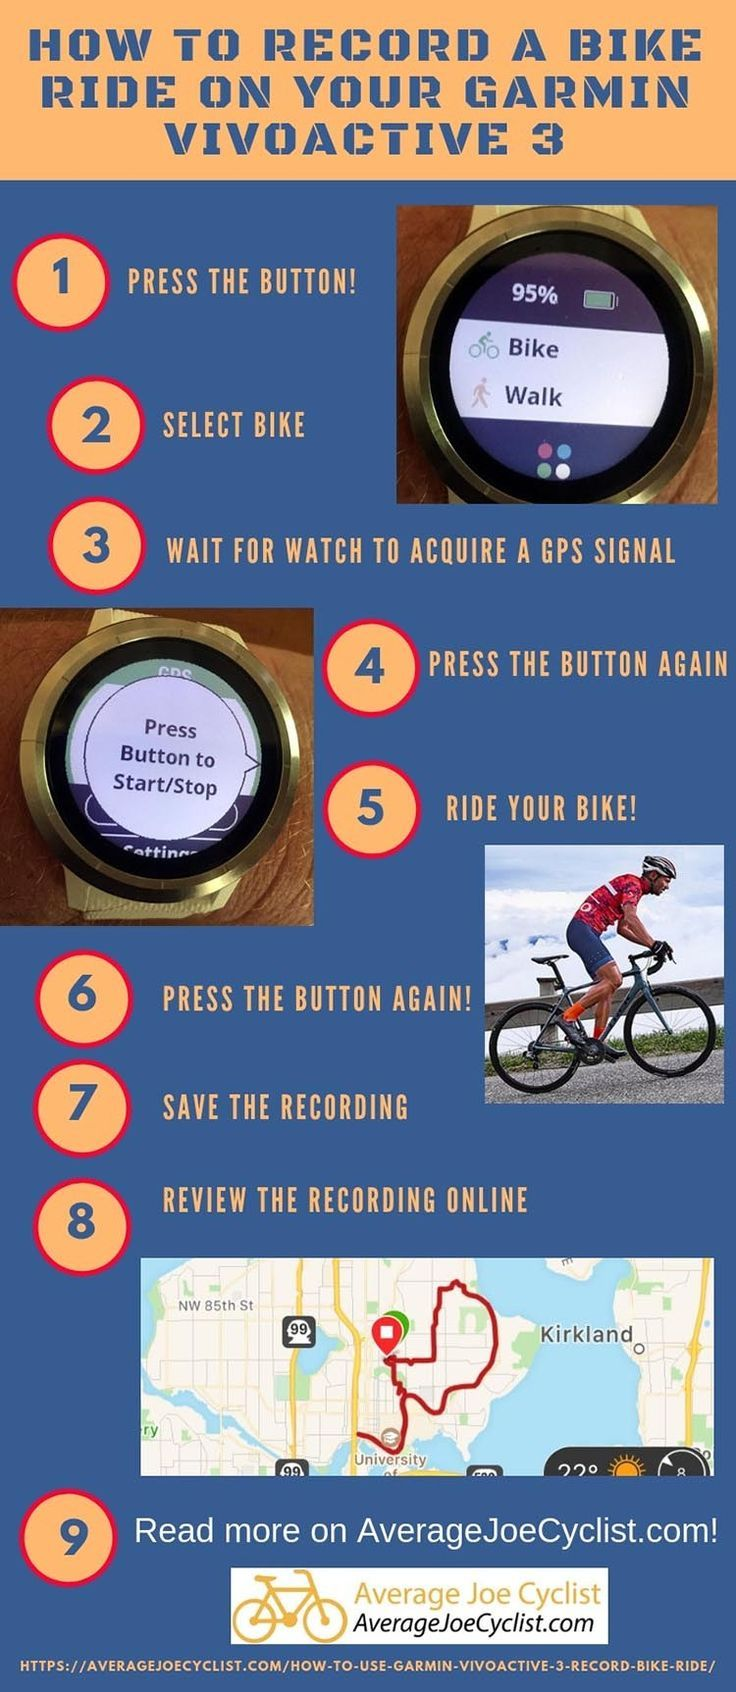 How To Record A Bike Ride With A Garmin Vivoactive 3 Fitness